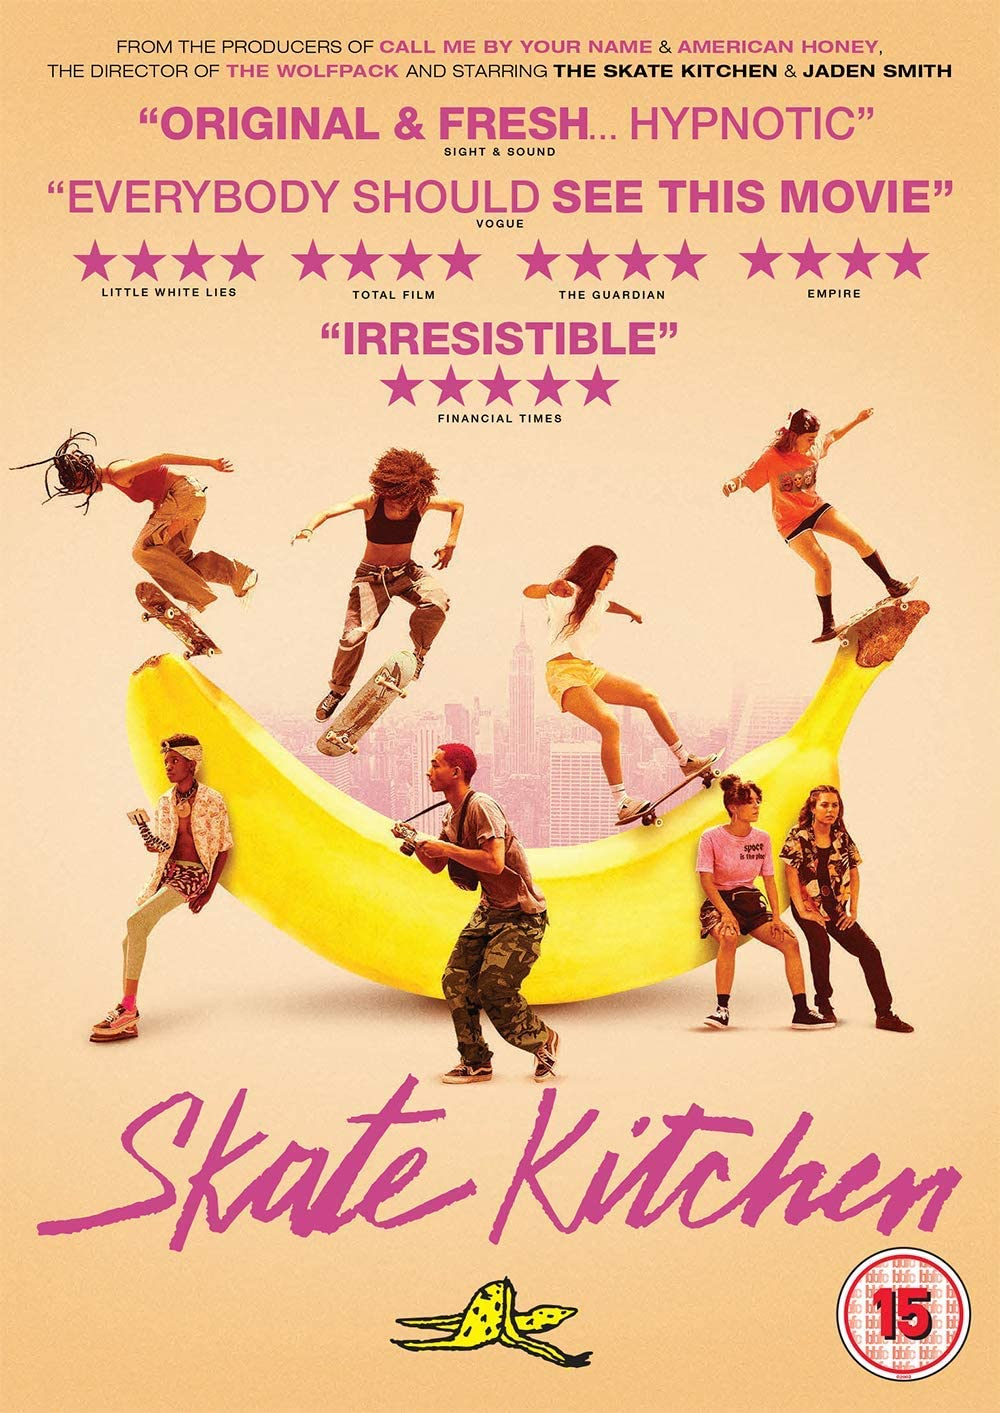 Skate Kitchen [DVD] [6]: Amazon.co.uk: Jaden Smith, Skate